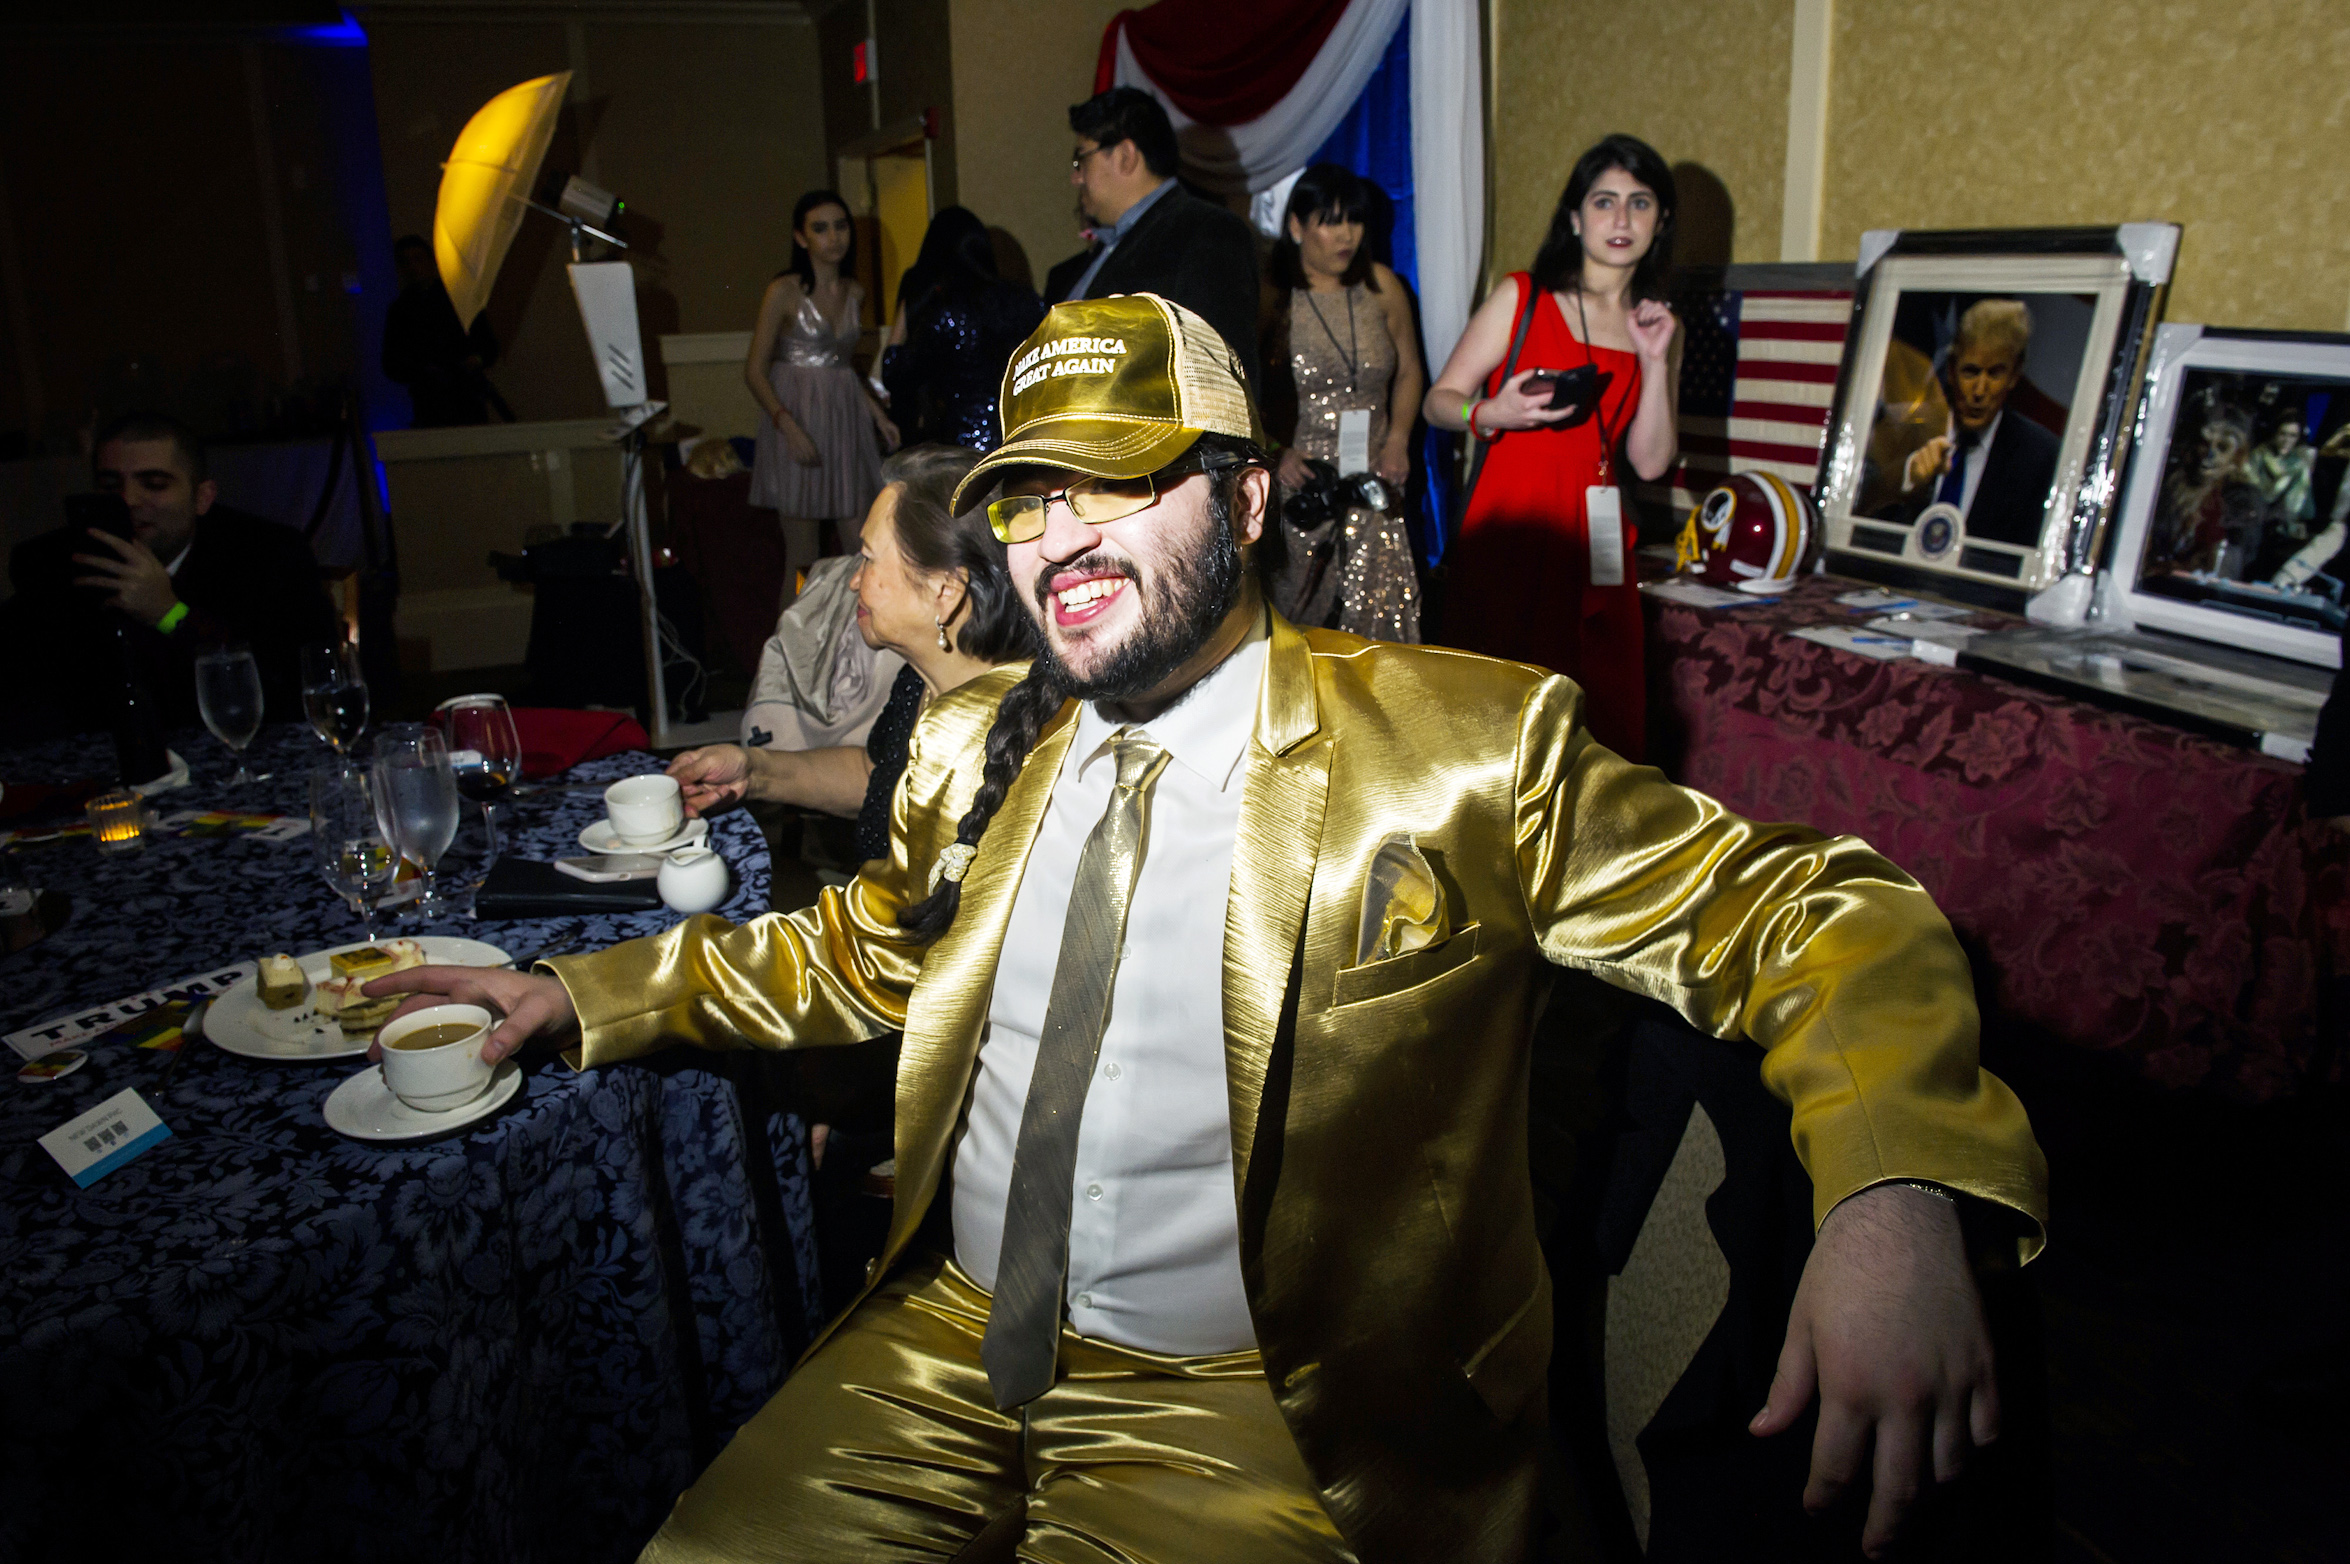 Andy Barr,  from Seattle at the Inaugural Deploraball hosted by Gays for Trump at the Bolger Center in Potomac, Maryland on January 20, 2017.